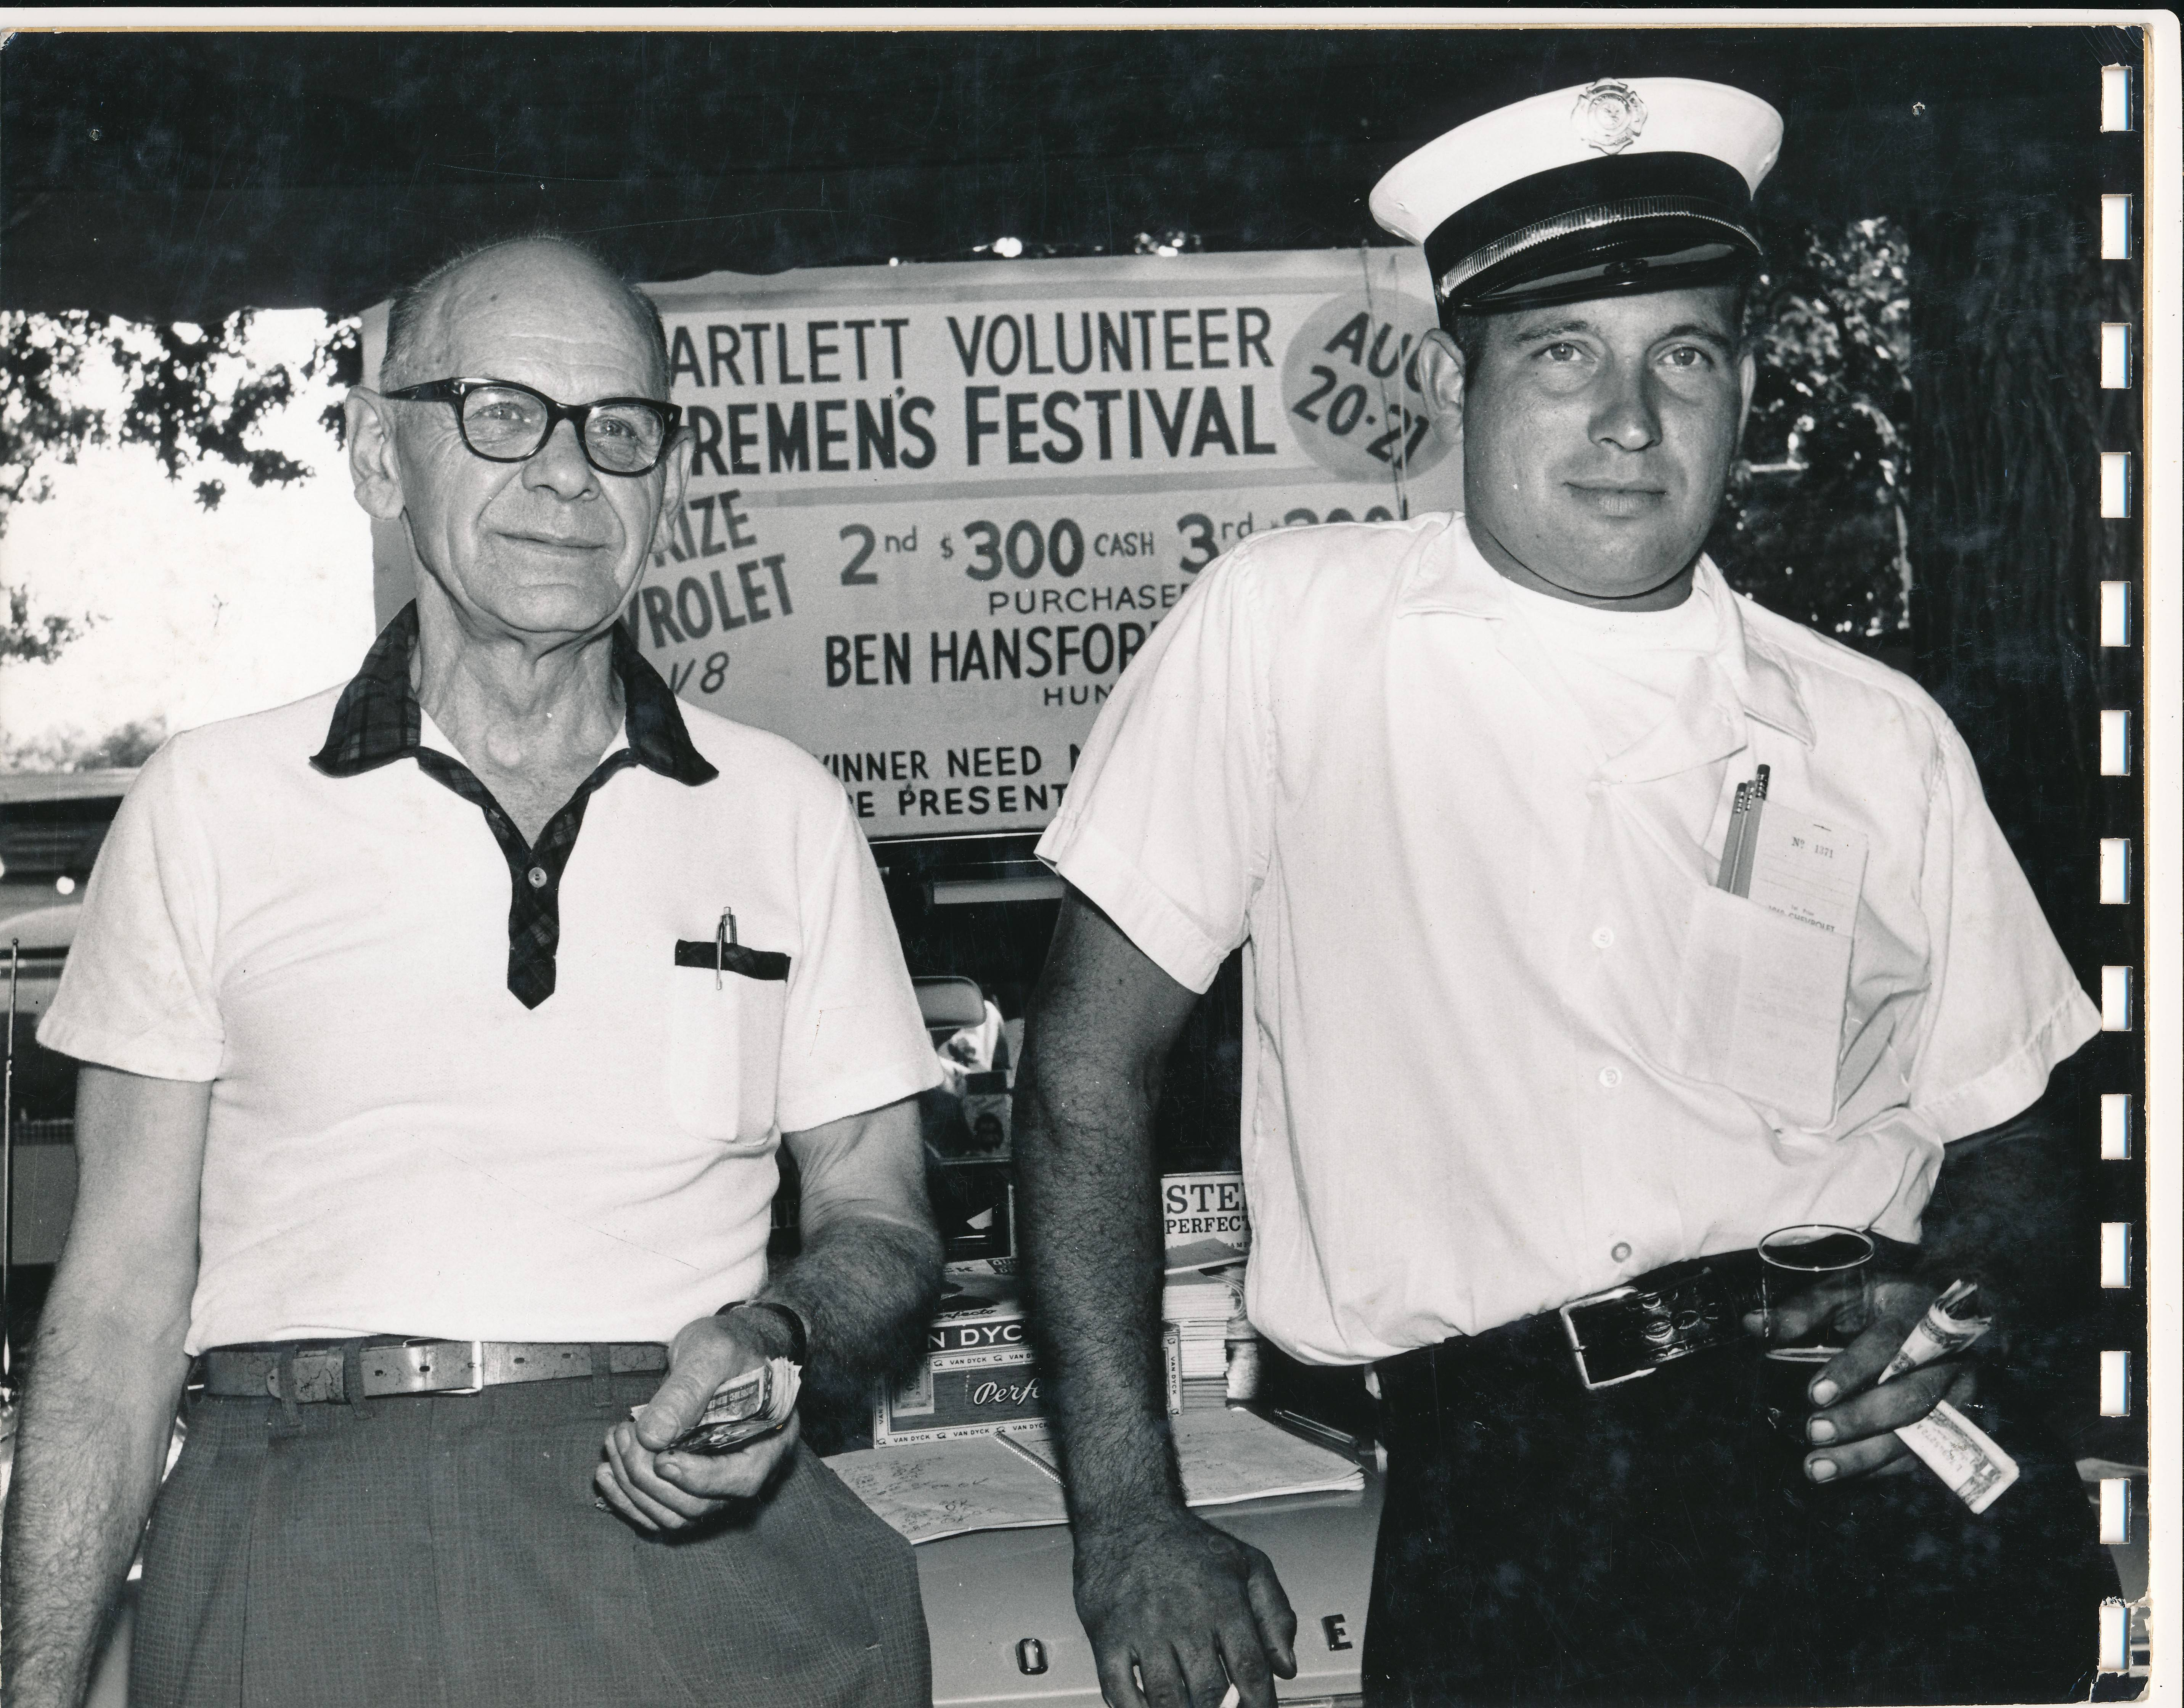 With cash in hands, Bill Schultz, left, and Bob Van Alstine, right, are selling raffle tickets at the 1960 Bartlett Firemen's Festival. First prize was a car!